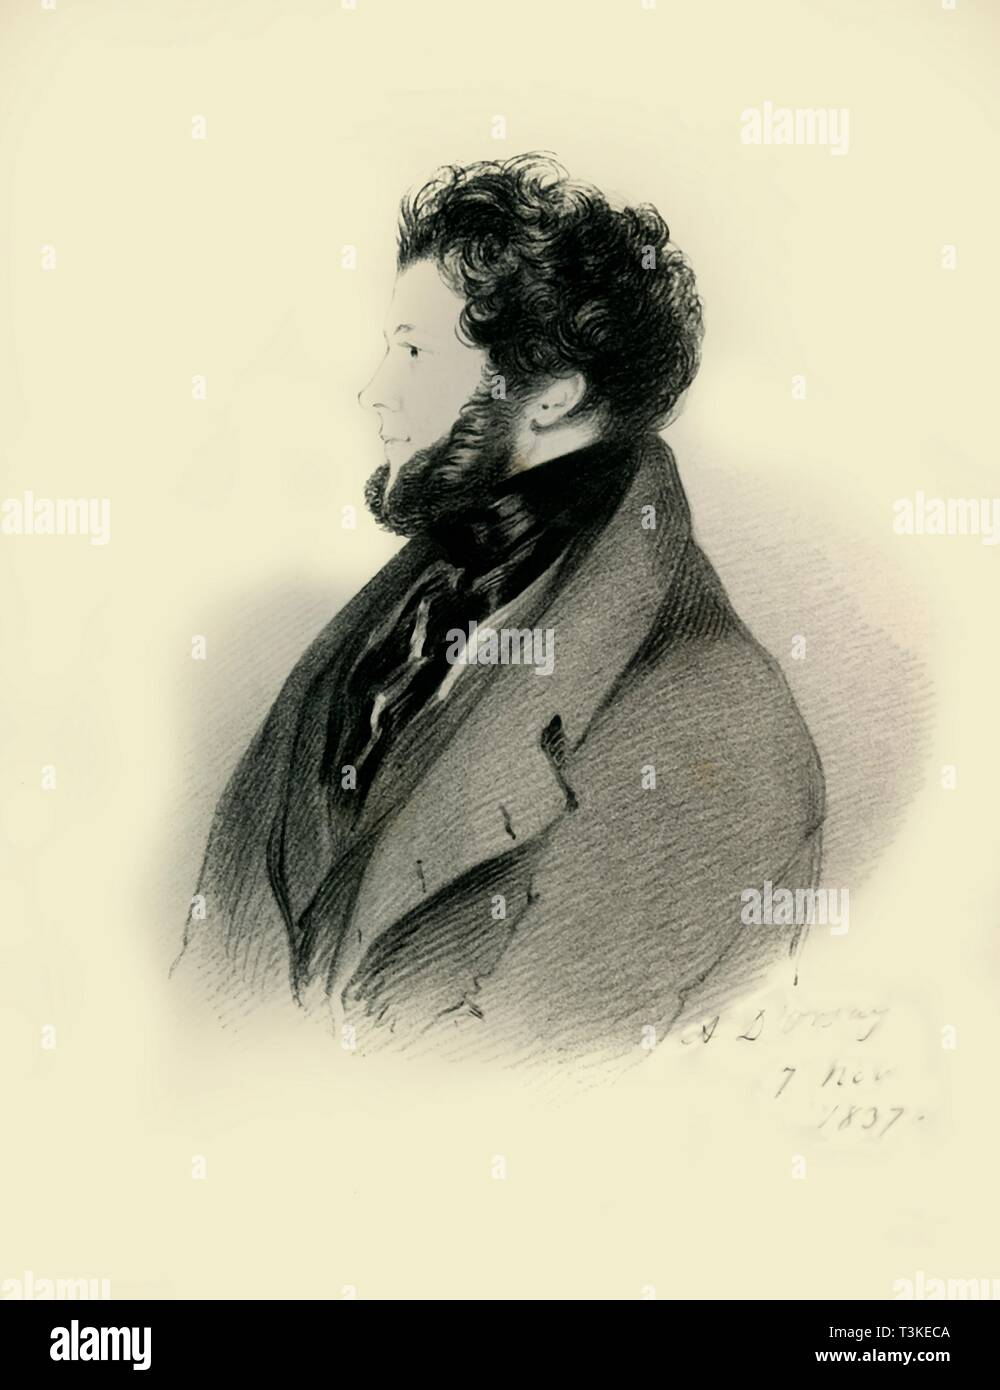 """'Charles Standish Esquire M.P.', 1837. Portrait of British politician and sportsman Charles Standish (1790-1863). From """"Portraits by Count D'Orsay"""", an album assembled by Lady Georgiana Codrington. [1850s] - Stock Image"""